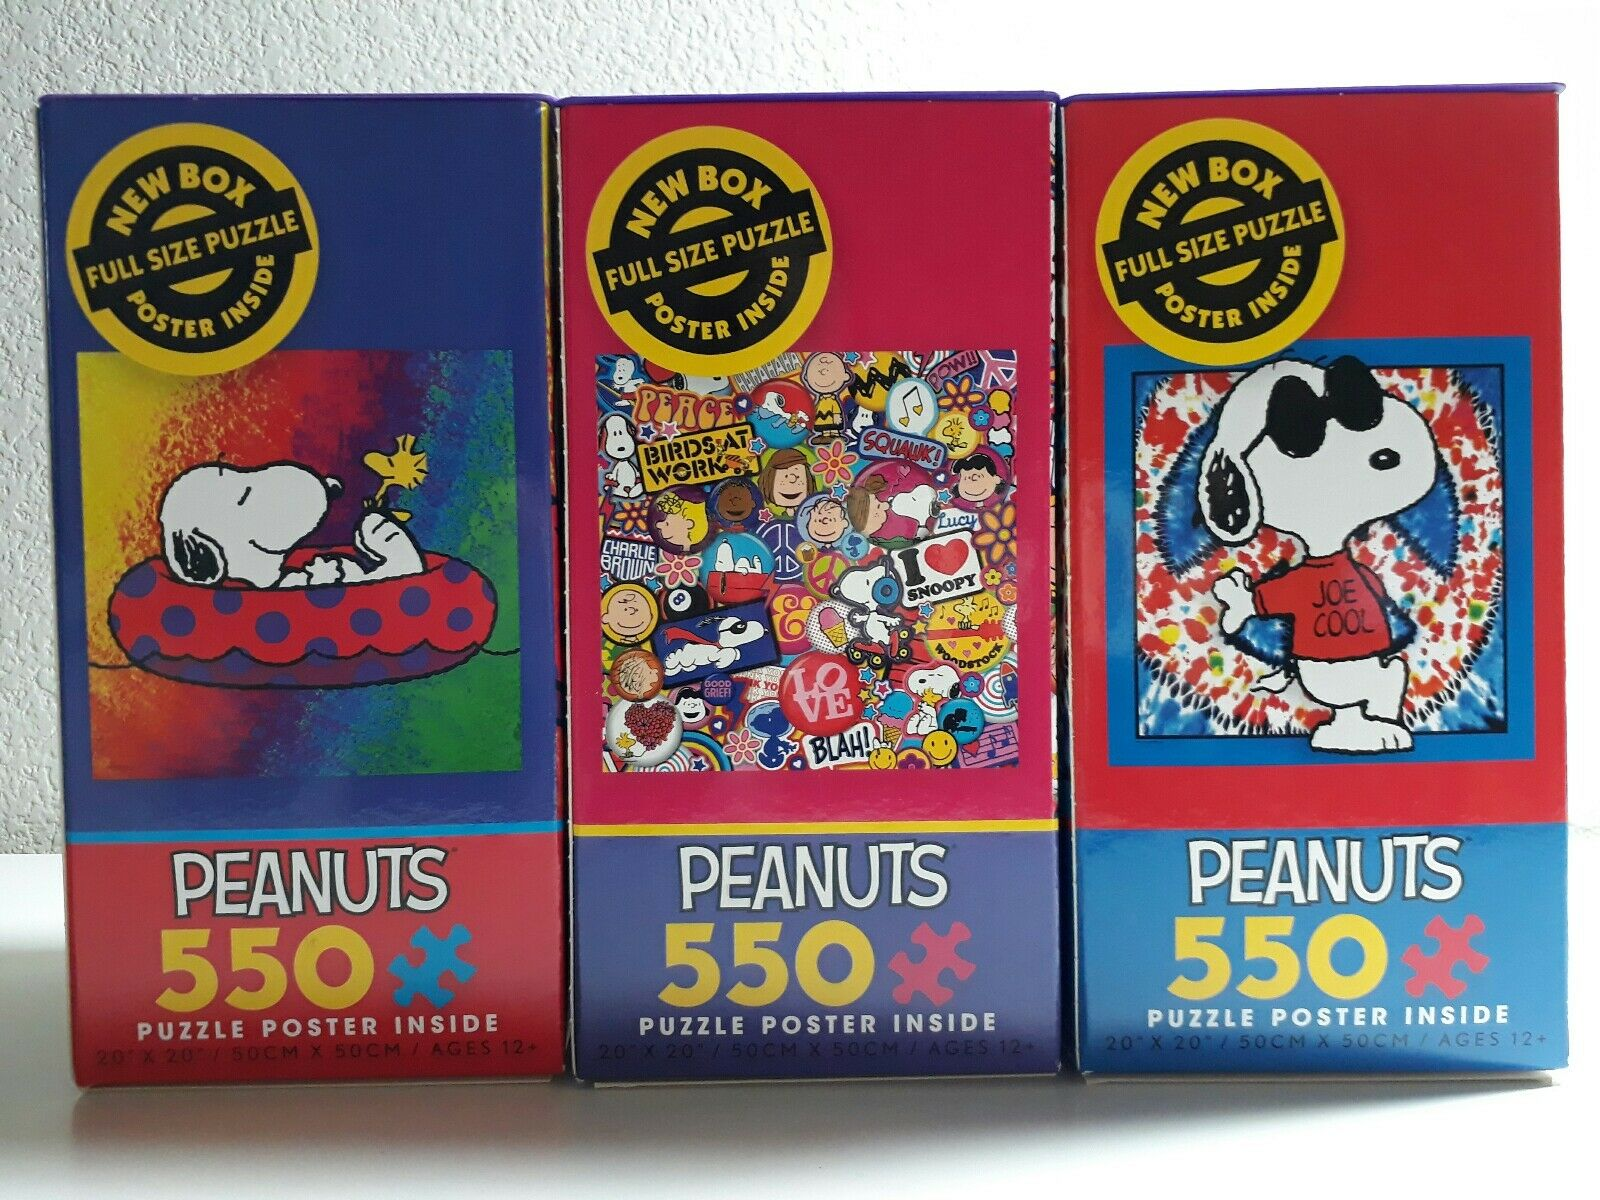 Peanuts 550 Piece Puzzle With Poster --- Set of 3 Boxes